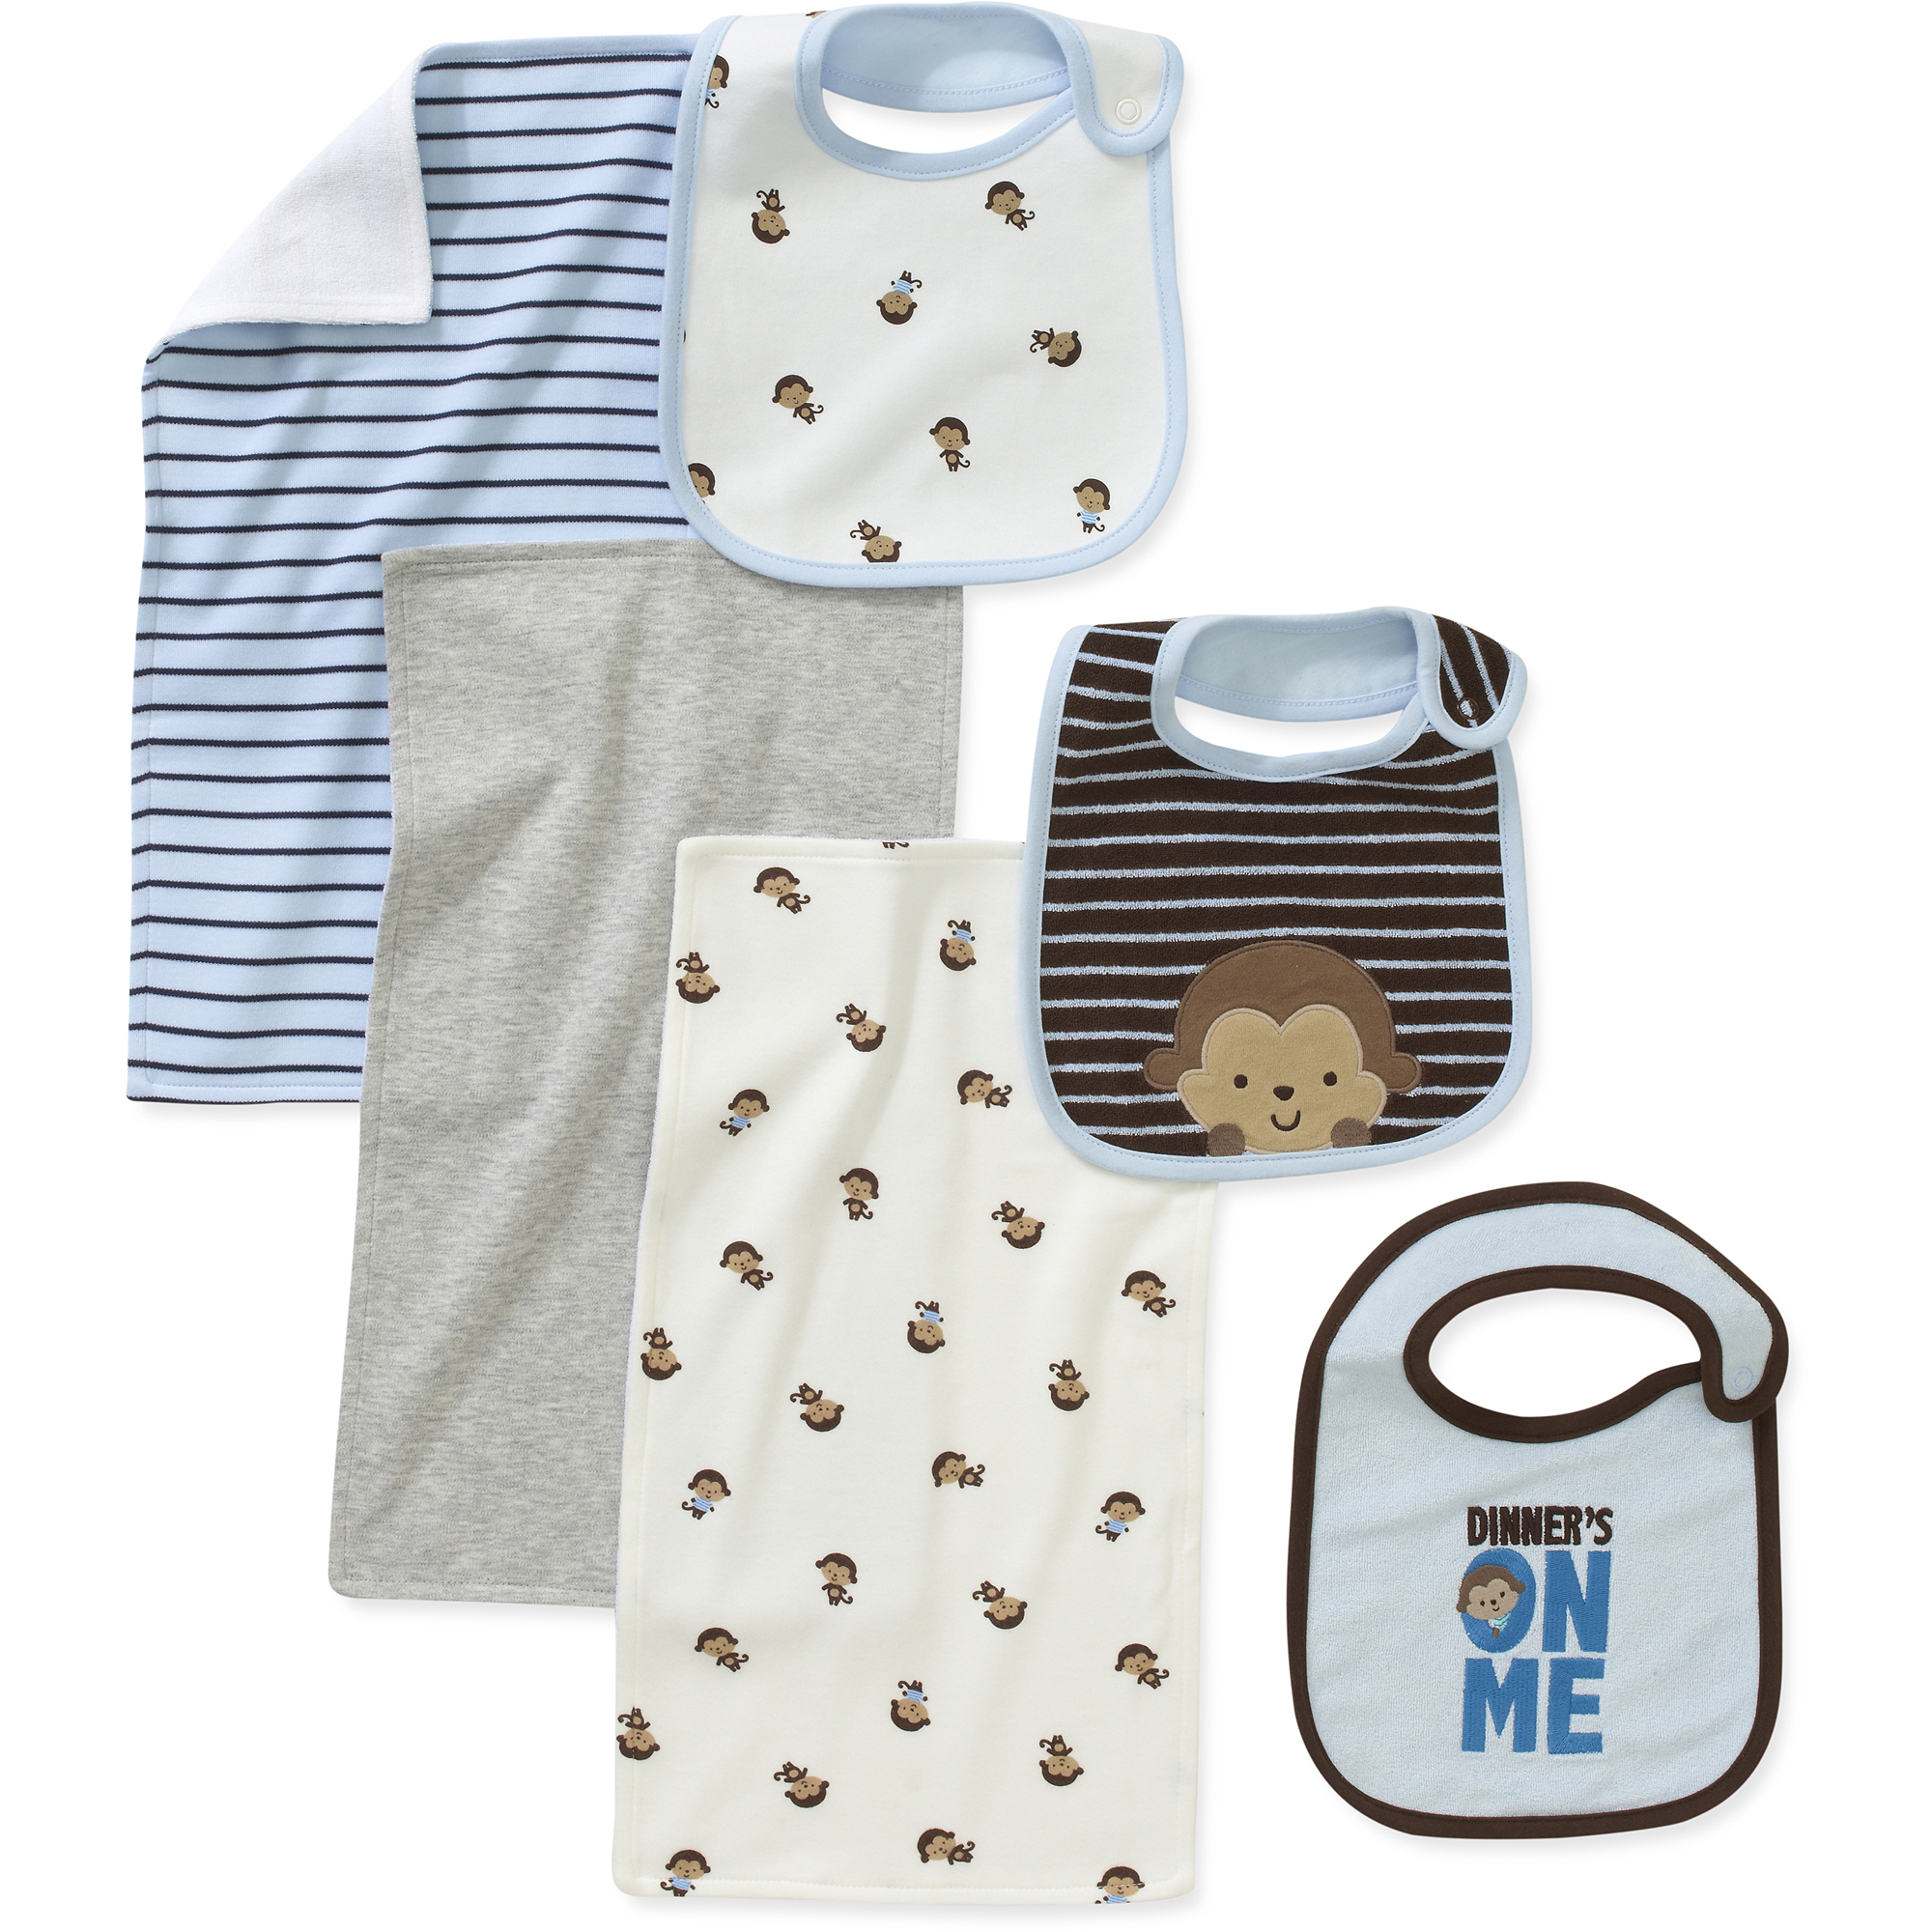 Child of Mine by Carters Newborn Boys' 6 Piece Bib and Burpcloth Set